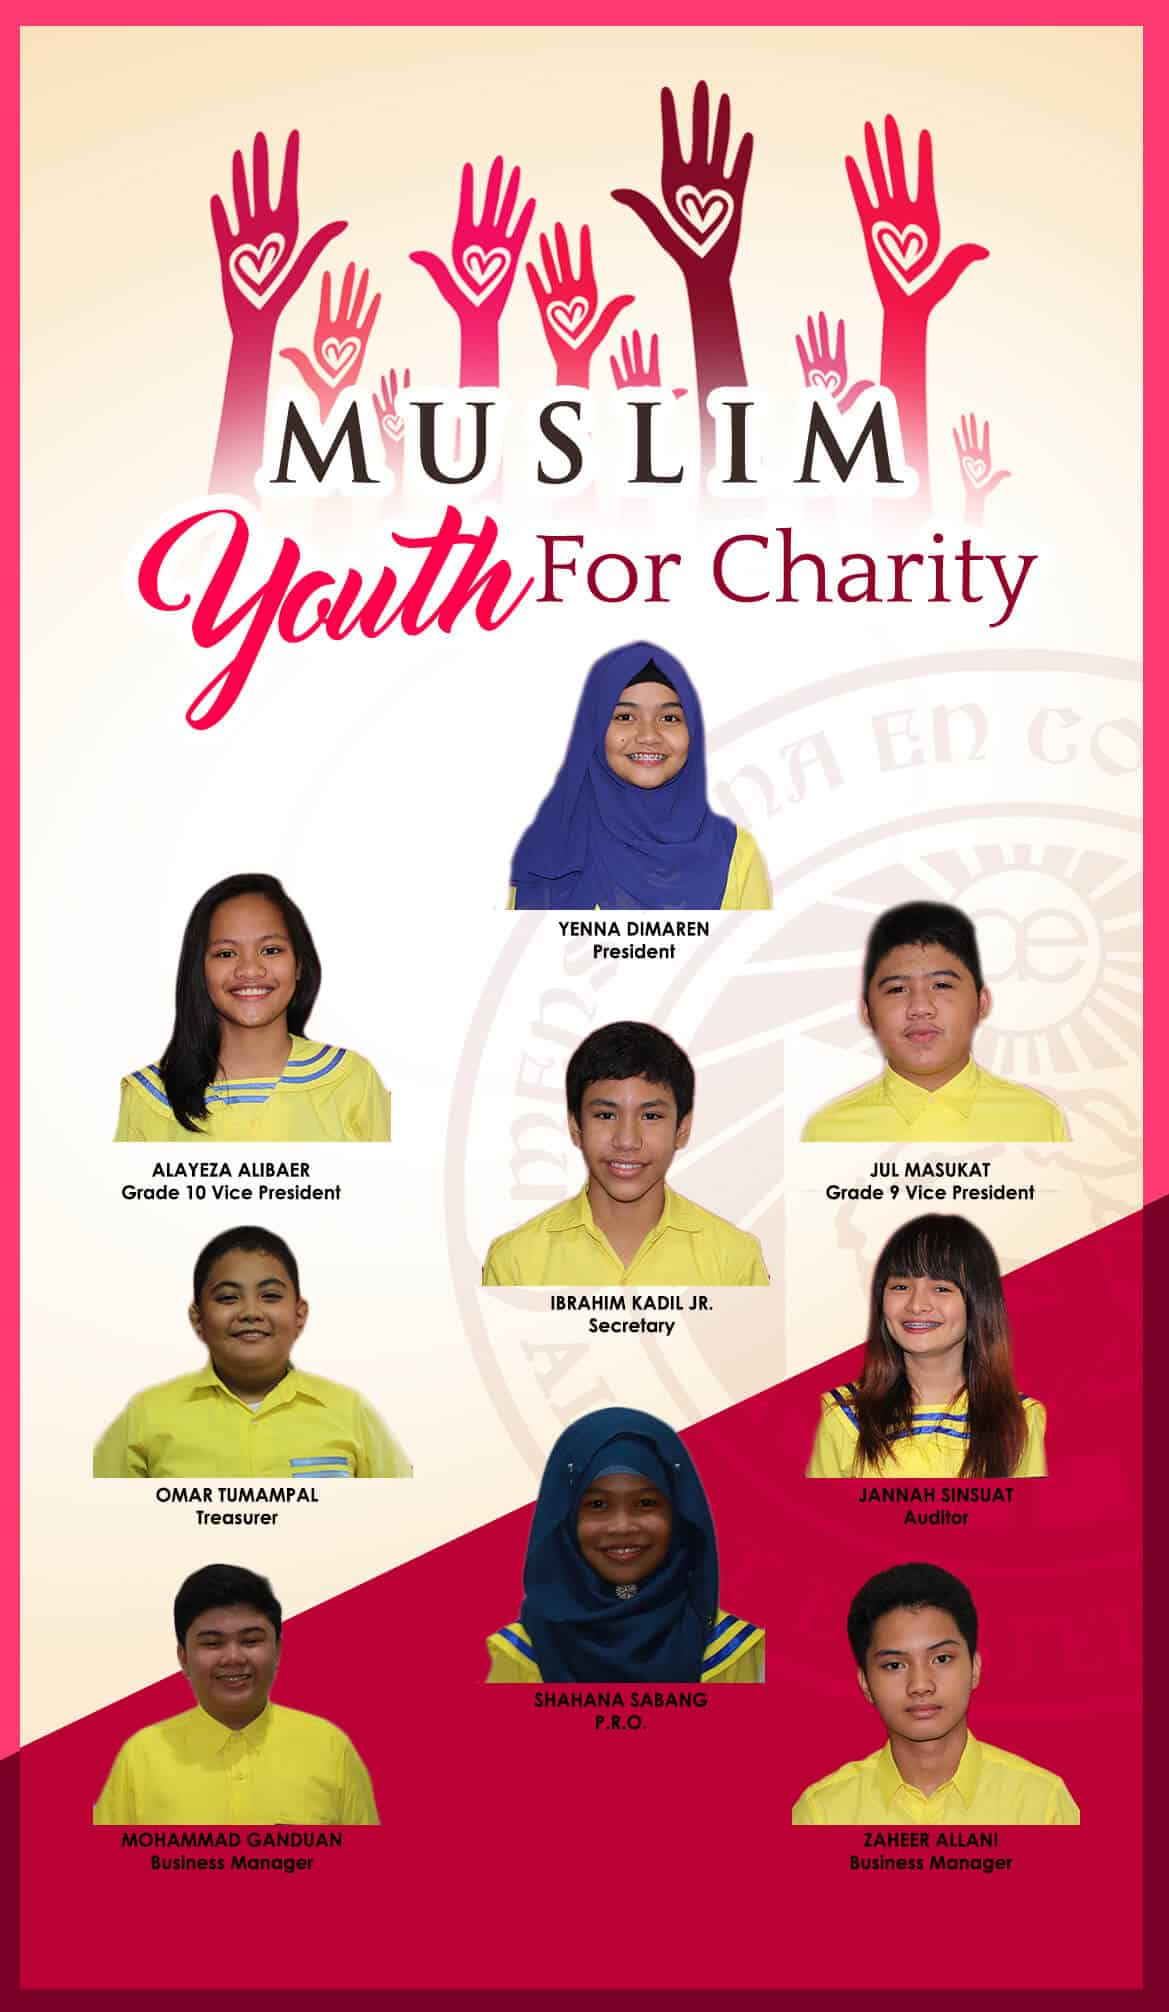 010-Muslim-Youth-For-Charity---final.jpg